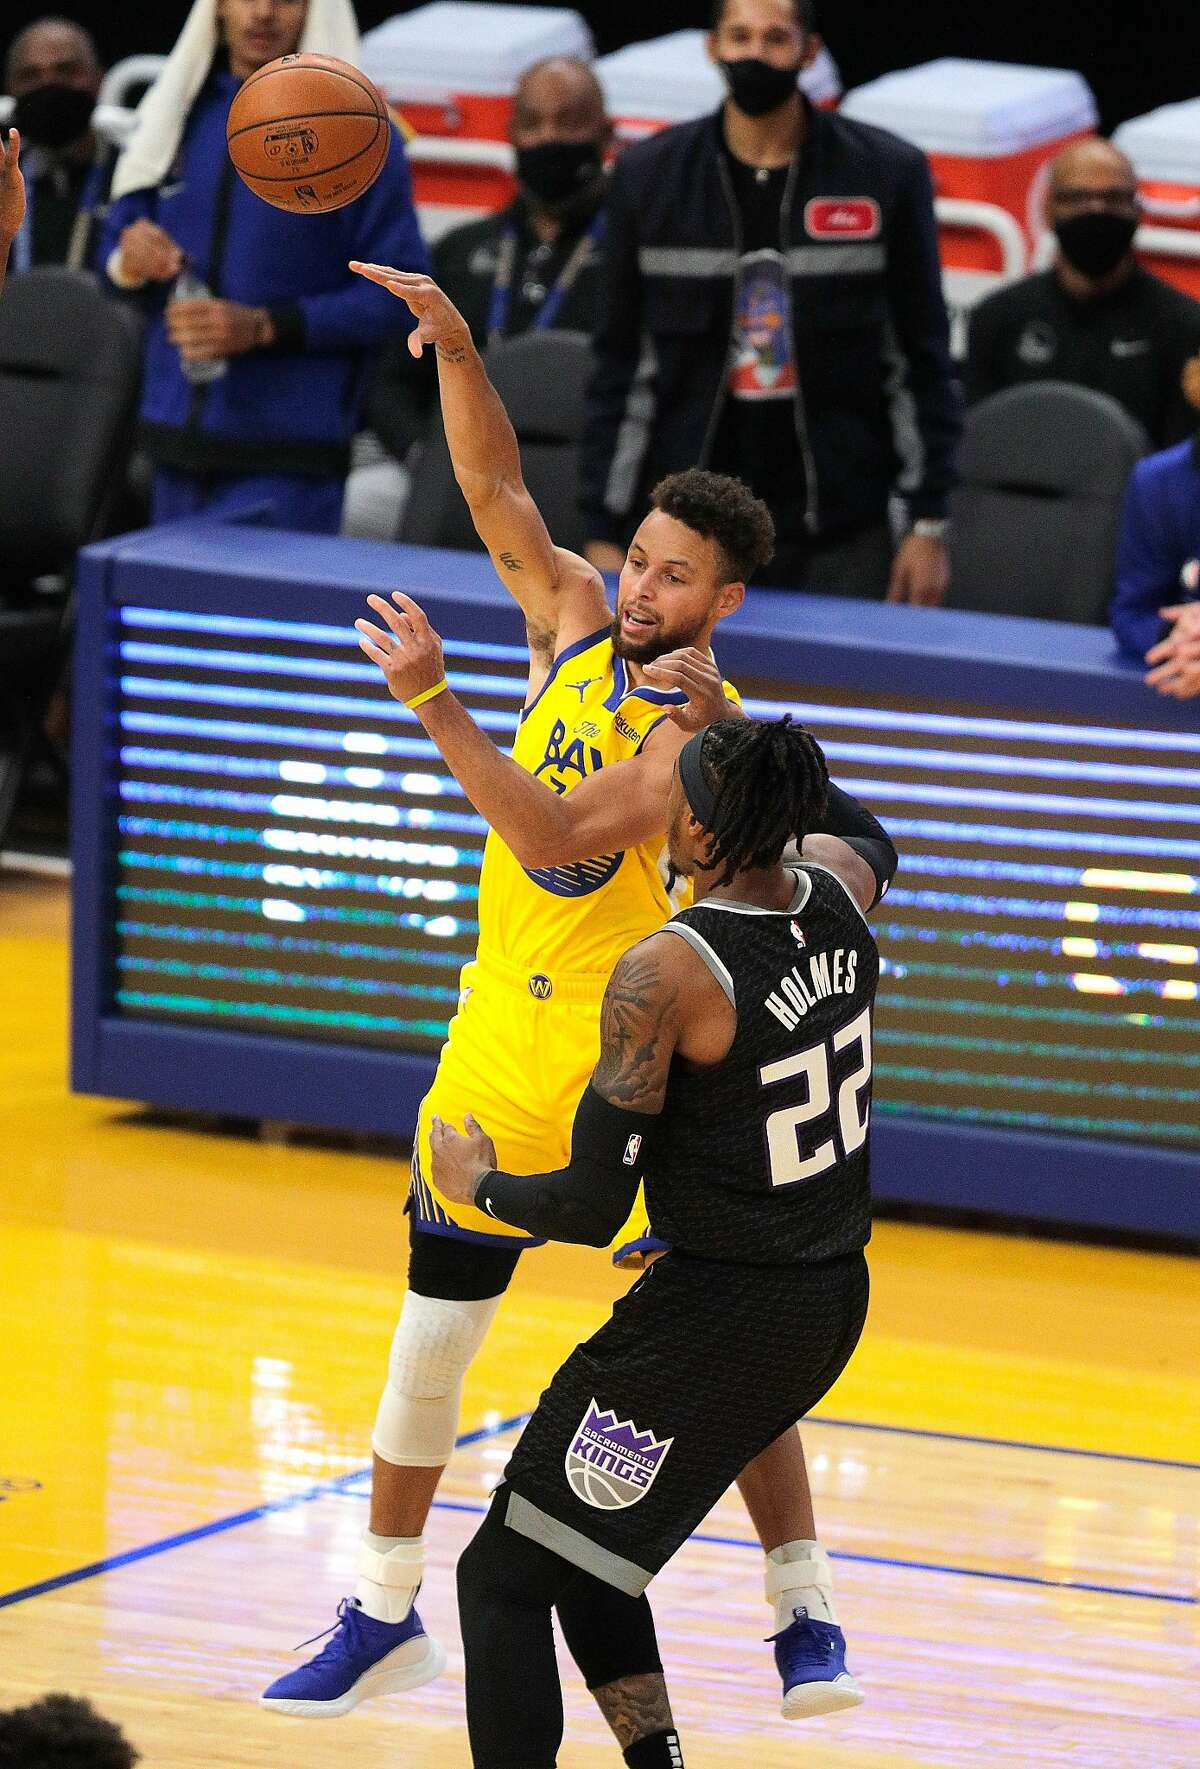 Stephen Curry (30) passes to a teammate defended by Richaun Holmes (22) in the first half as the Golden State Warriors played the Sacramento Kings at Chase Center in San Francisco, Calif., on Monday, January 4, 2021.